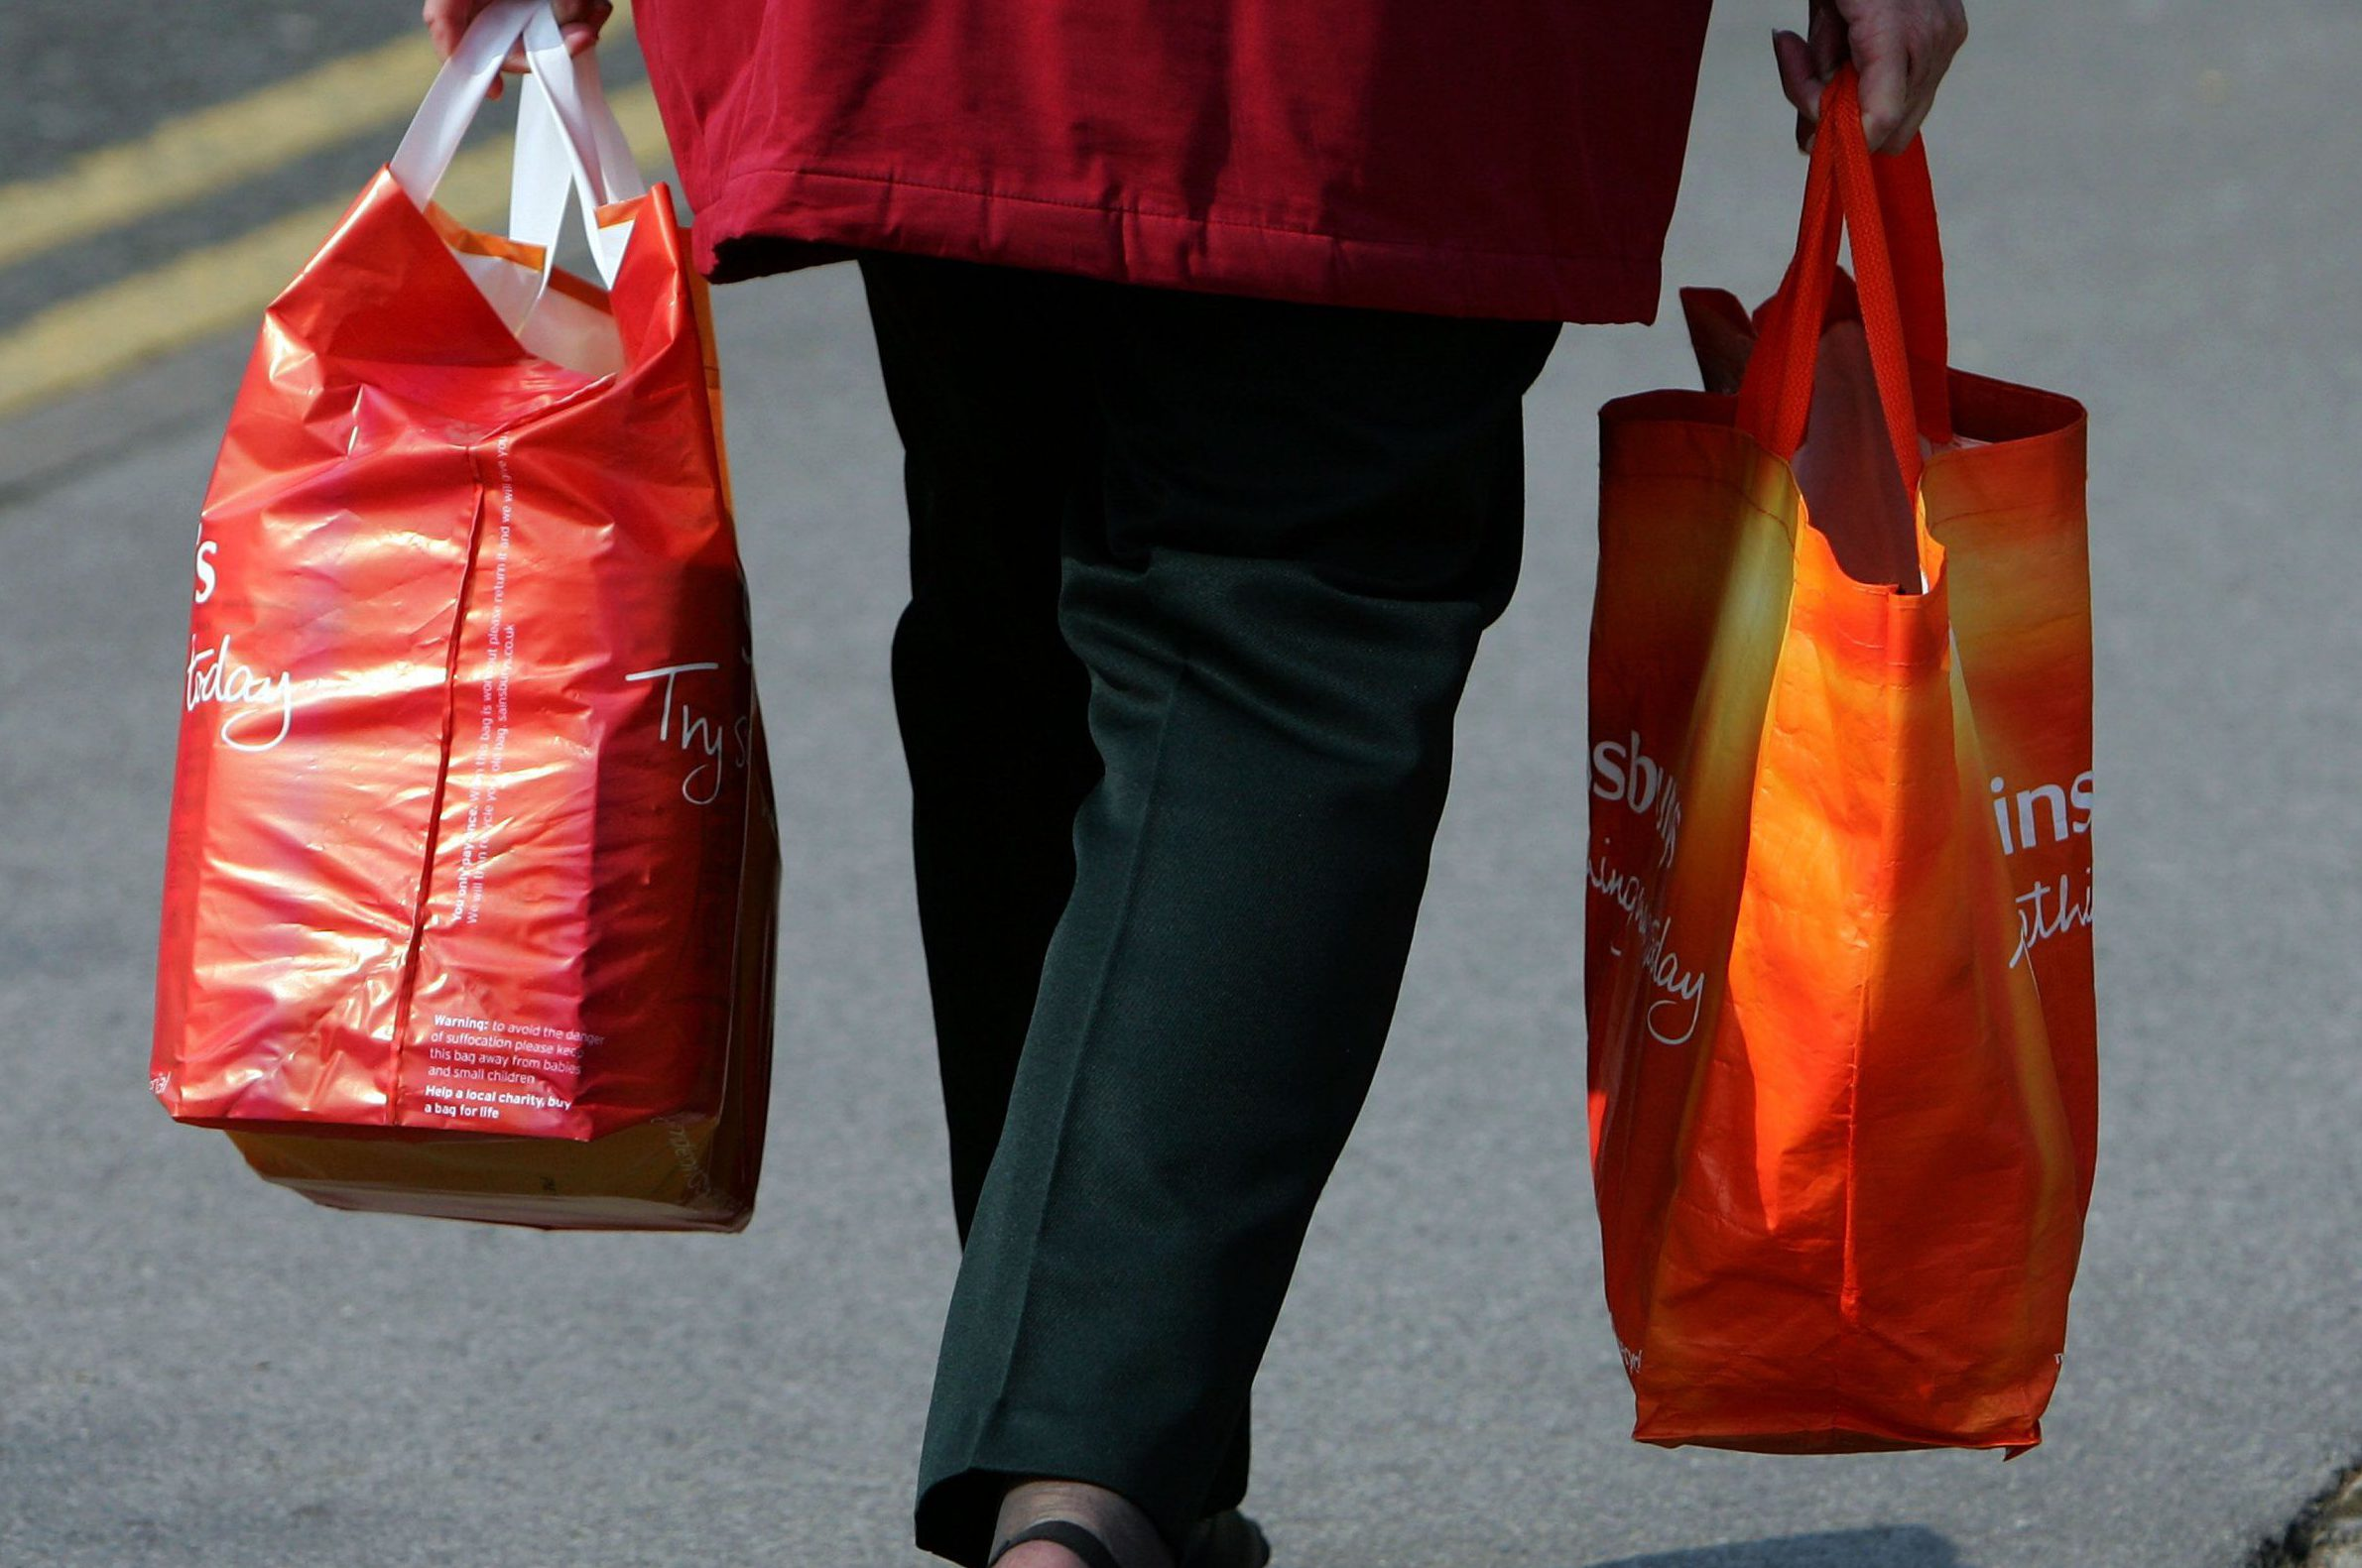 Supermarket Bags for Life could cause food poisoning